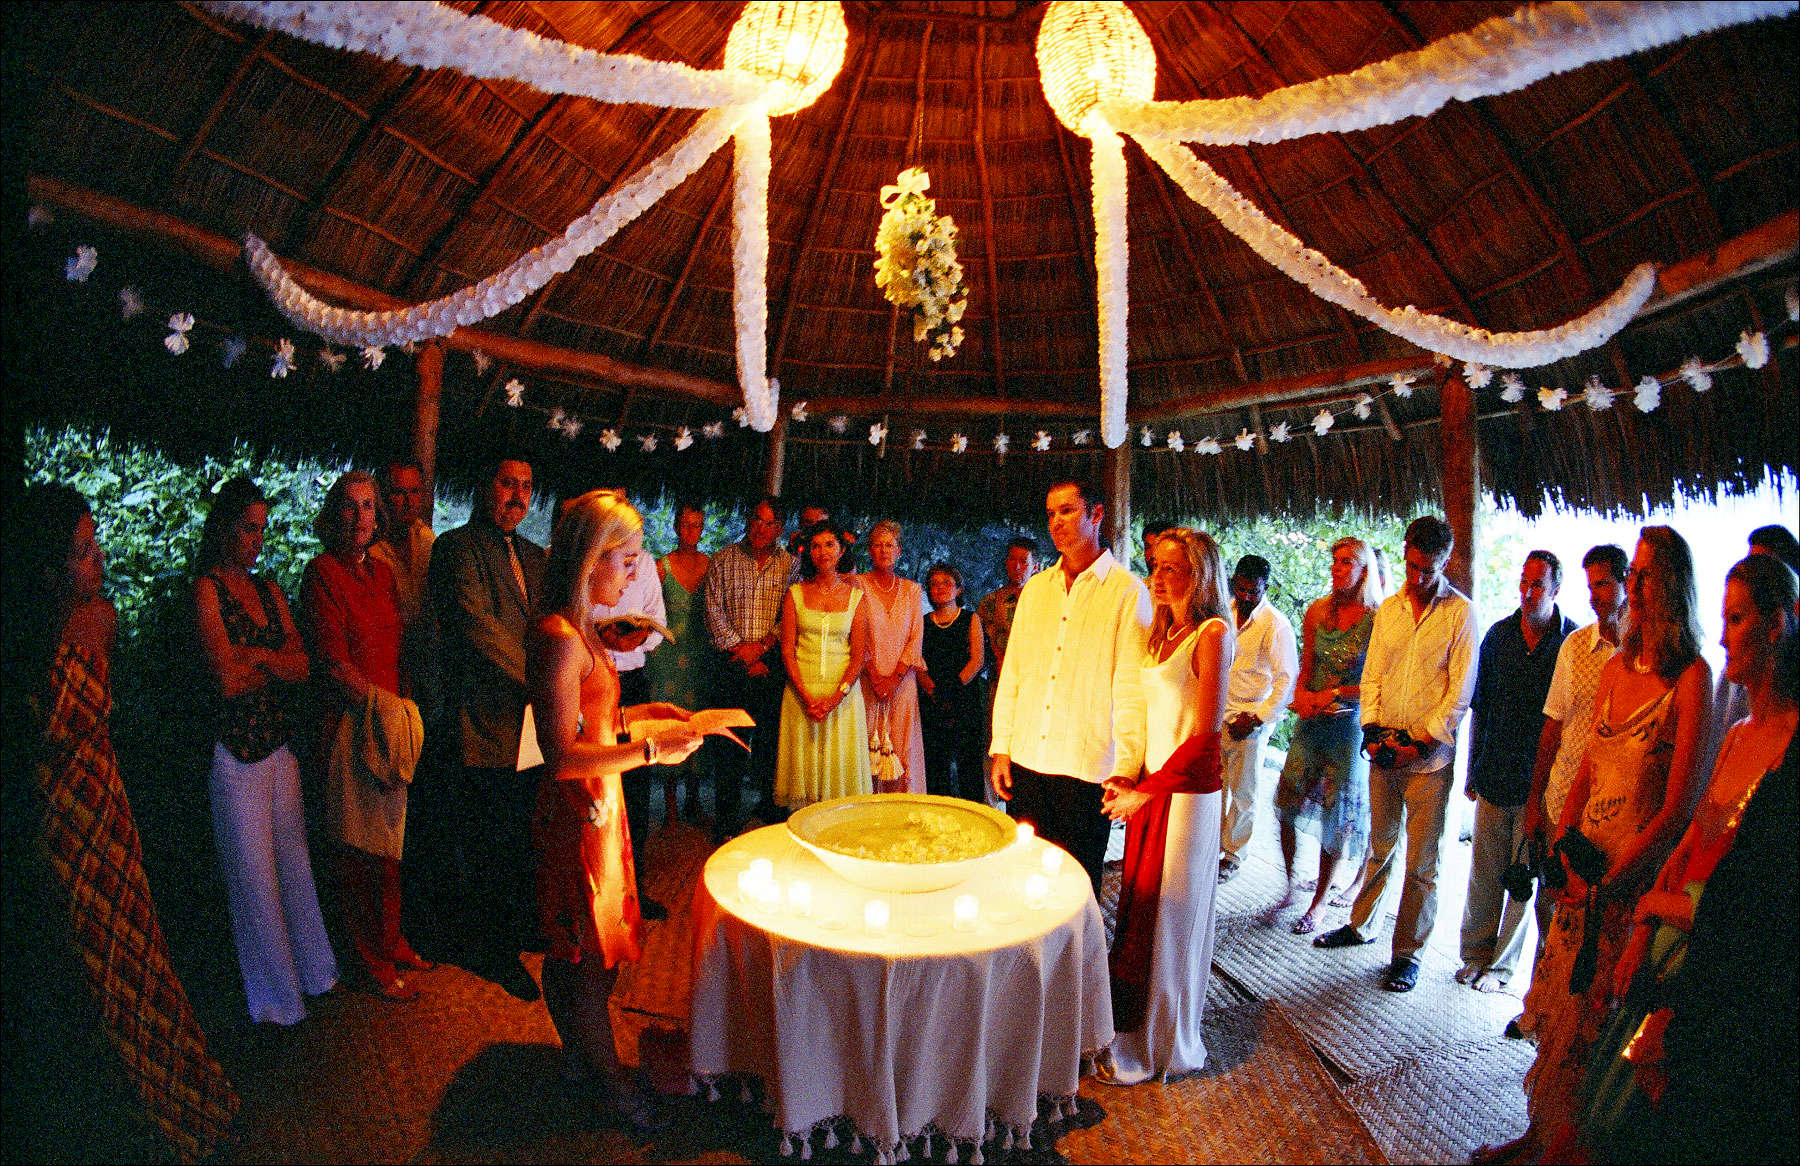 Faves_177_Sayulita_Mexico_Hacienda-Beach-Wedding_04